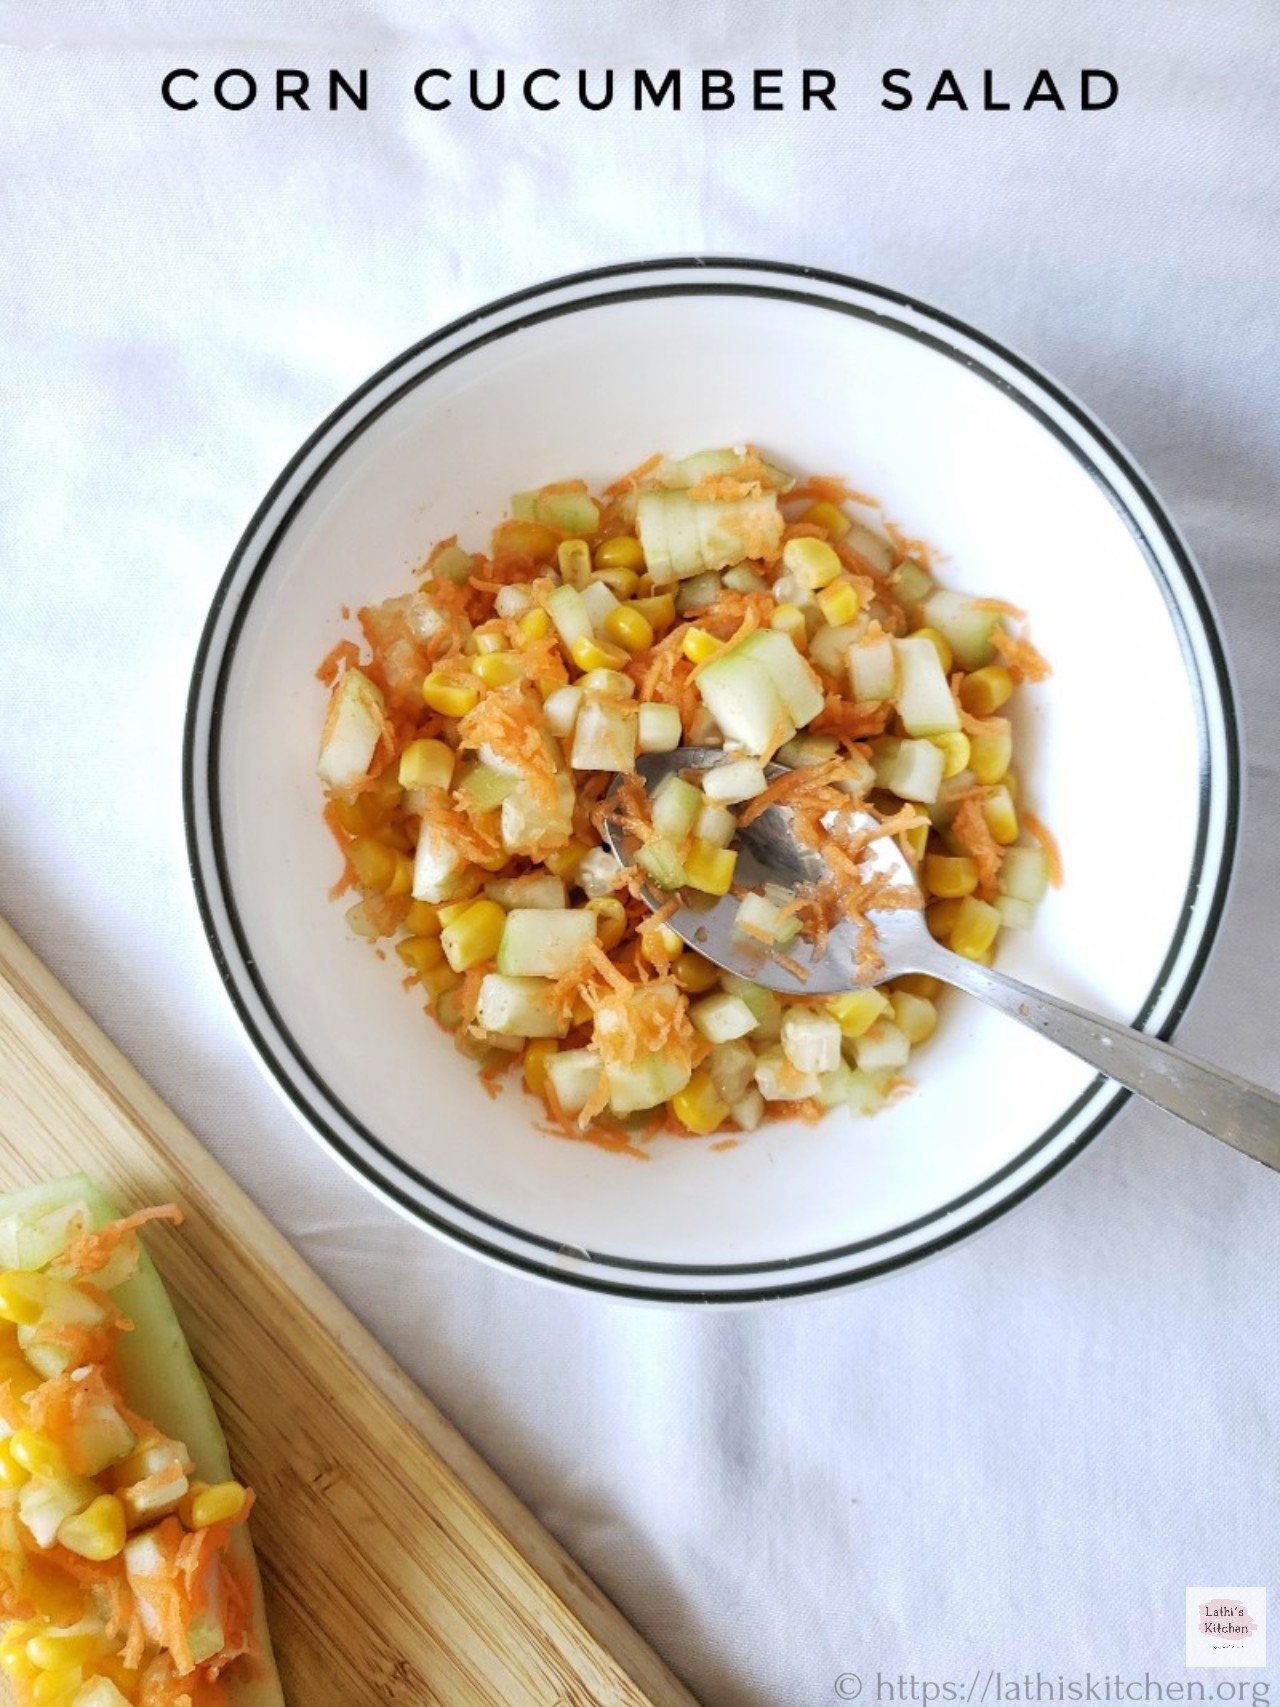 Corn cucumber salad,salad,healthy,breakfast,easy,vegetarian,